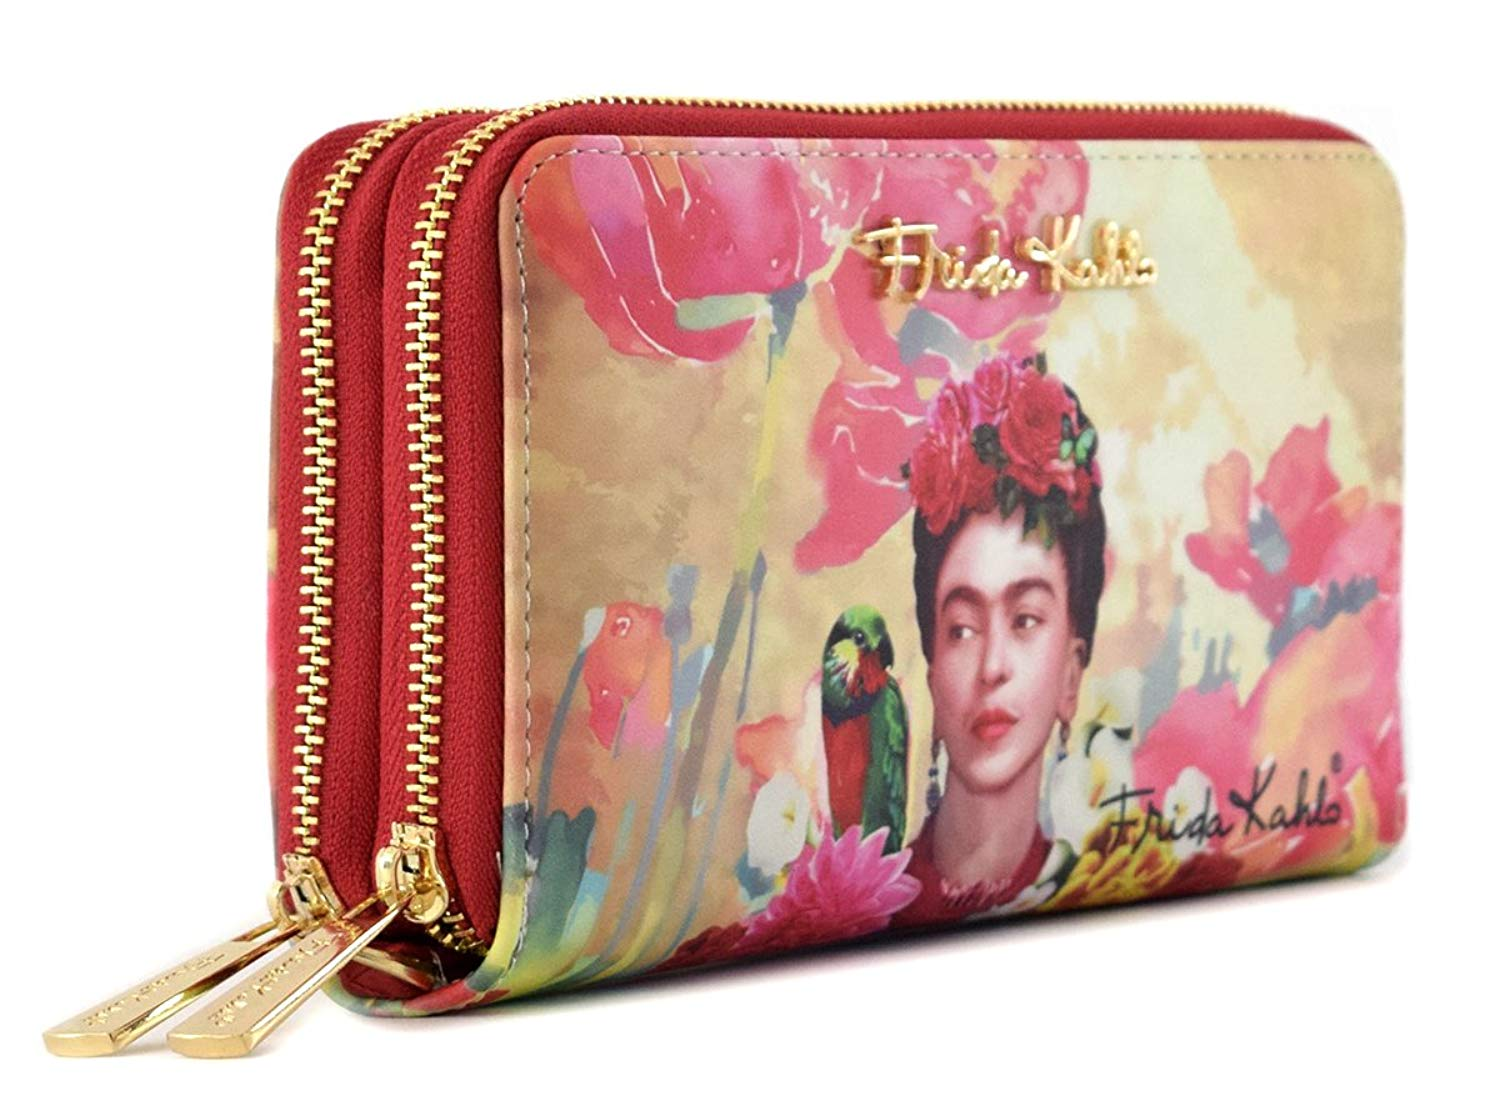 ca627aabe0b04 Get Quotations · Frida Kahlo Floral Series Double Zip Wallet   Wristlet